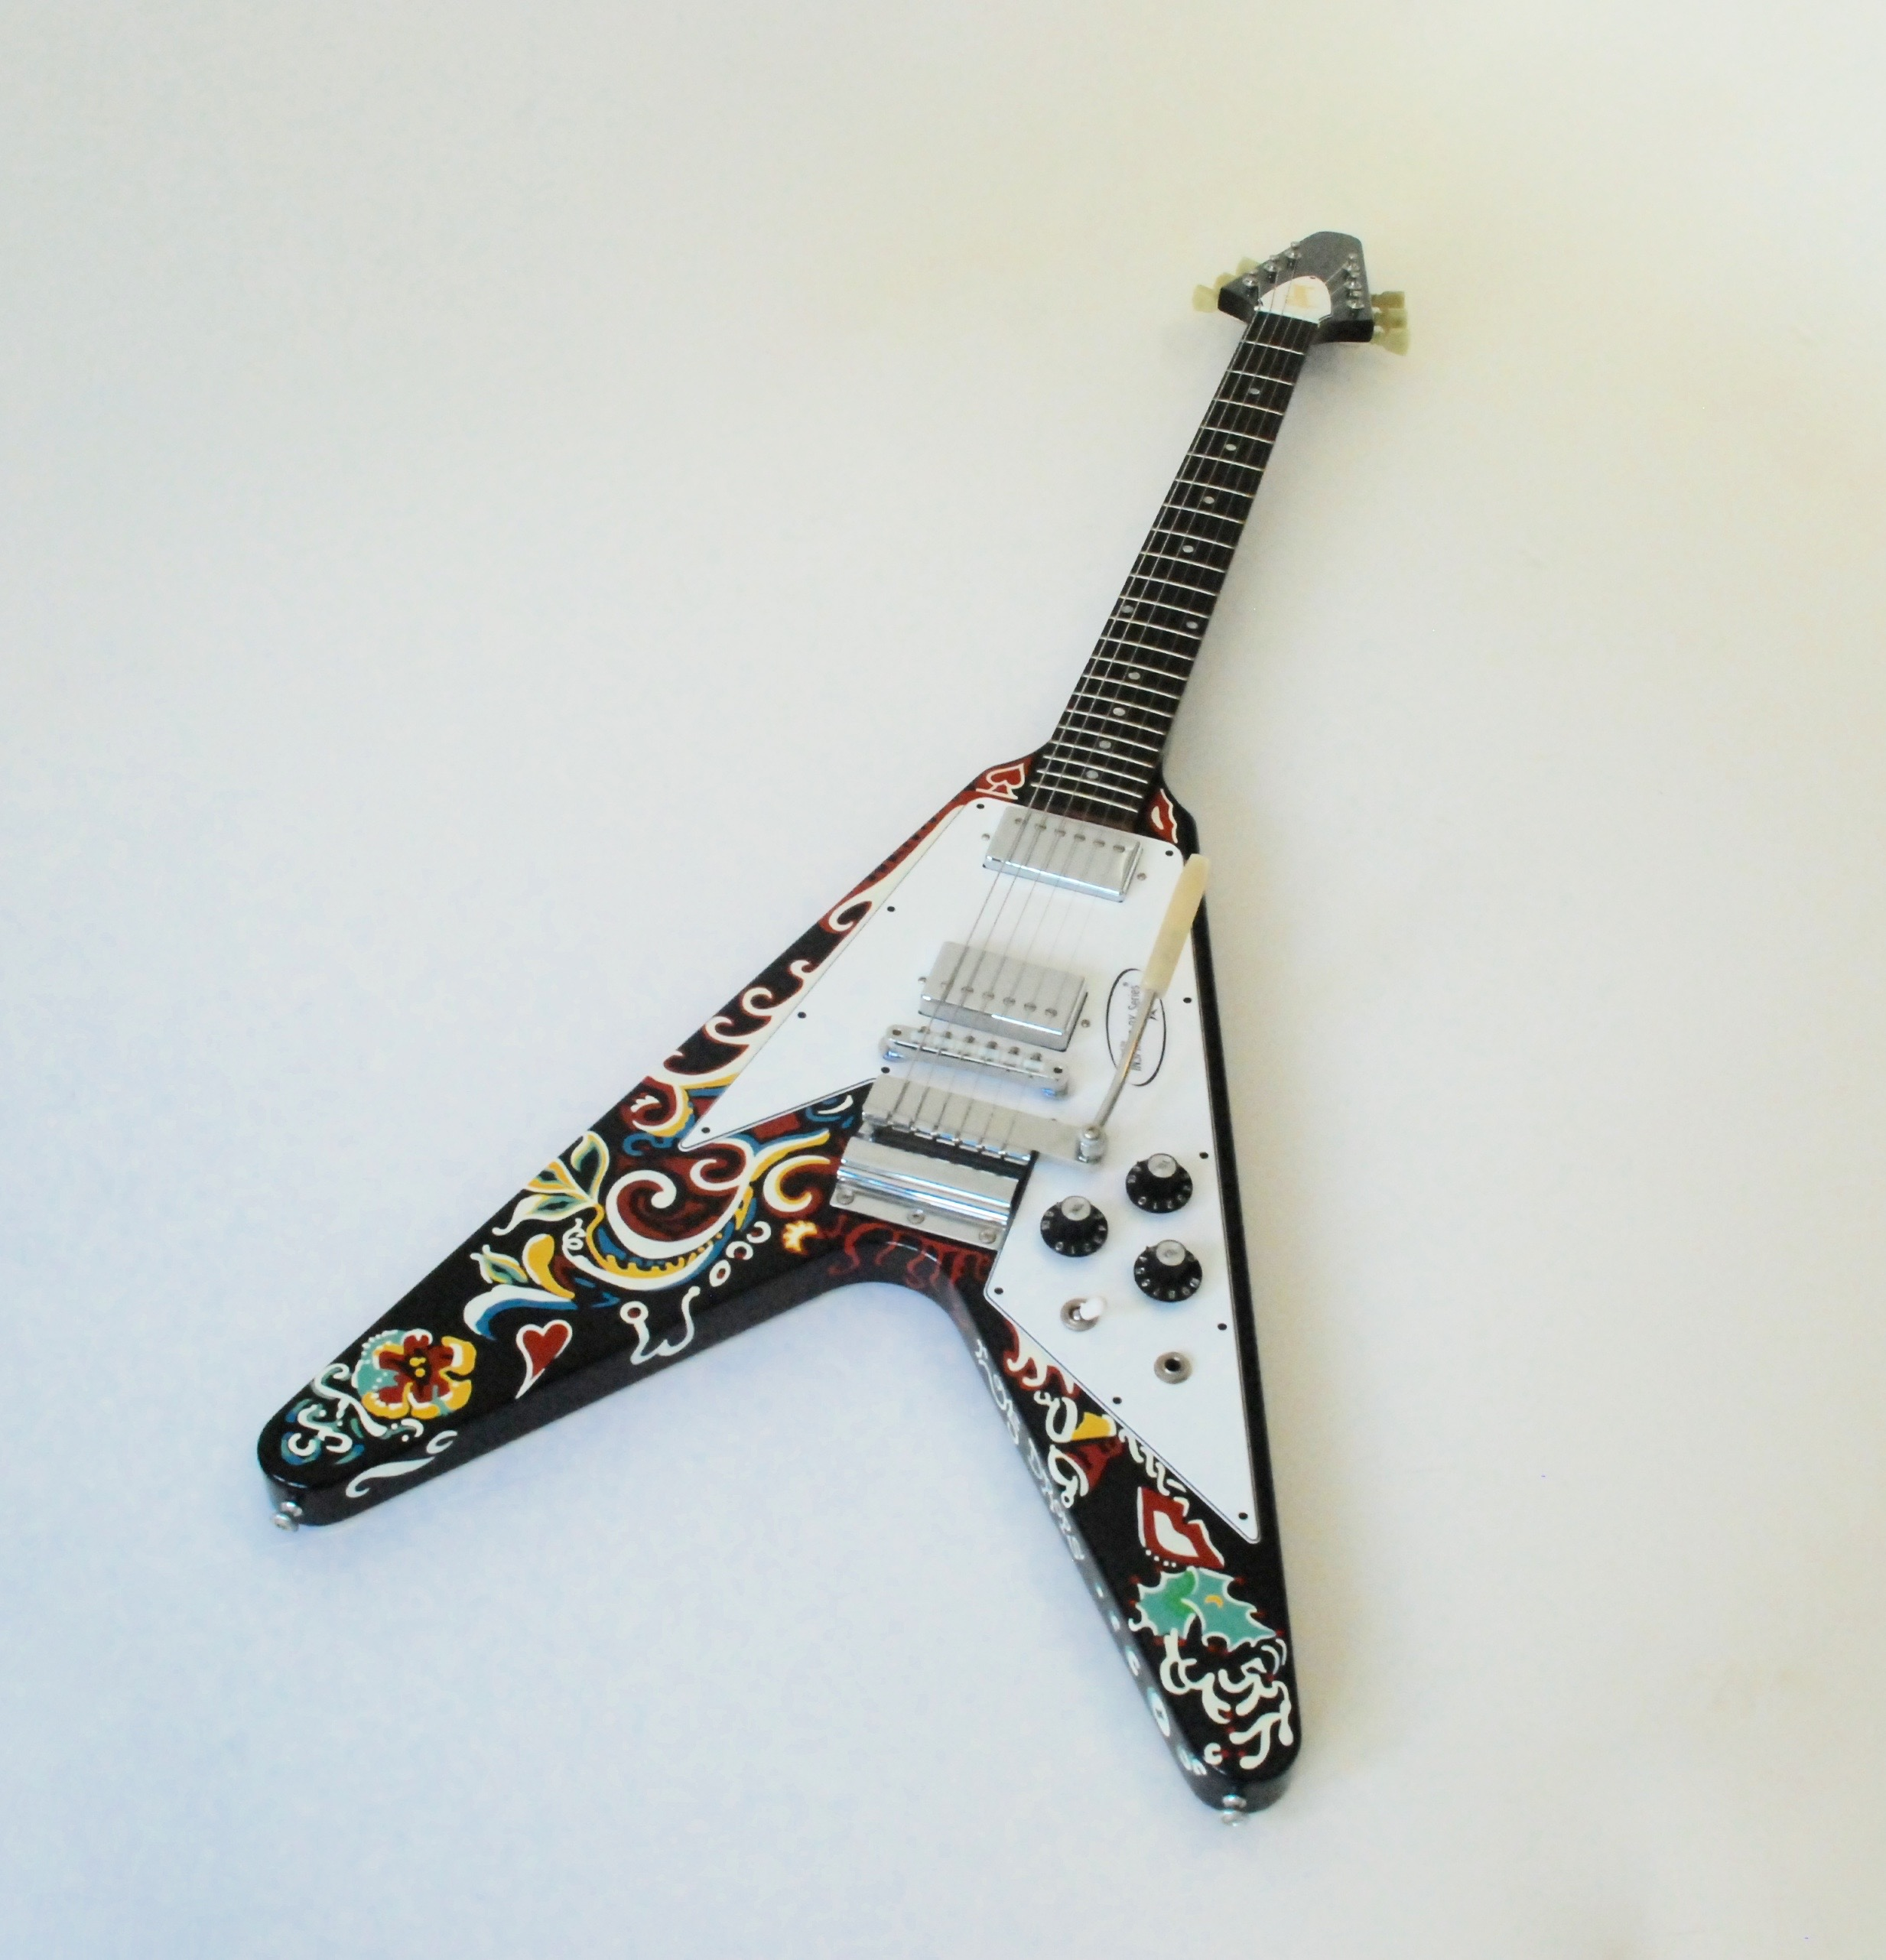 gibson flying v psychedelic jimi hendrix custom shop 2006 guitar for sale bass n guitar. Black Bedroom Furniture Sets. Home Design Ideas